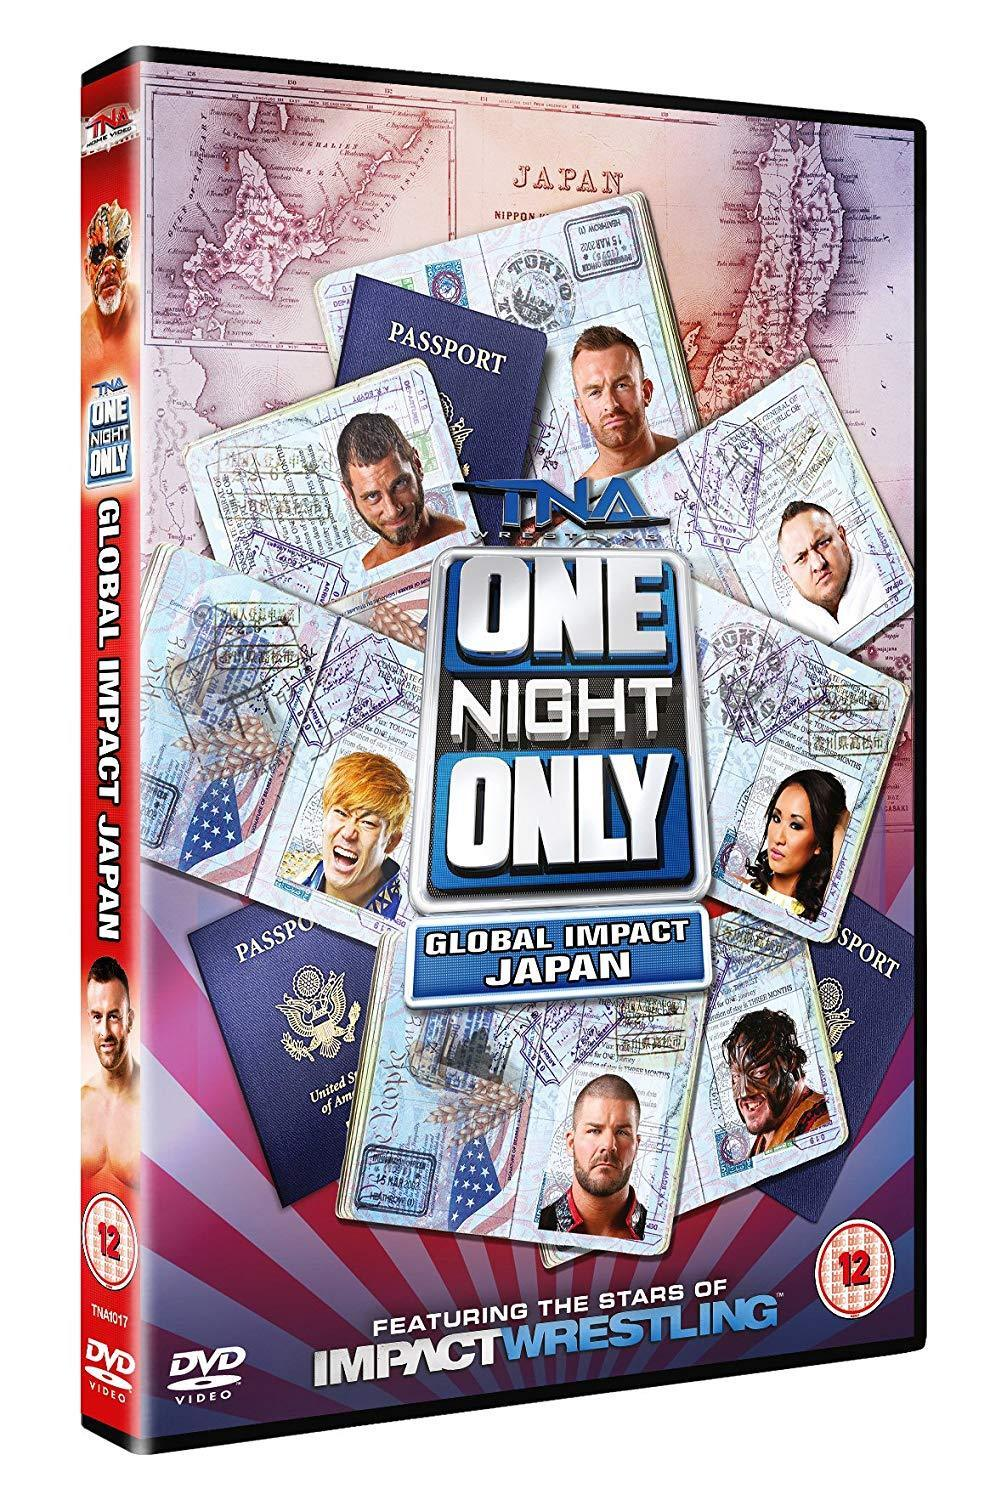 One Night Only: Global Impact Japan 2014 DVD